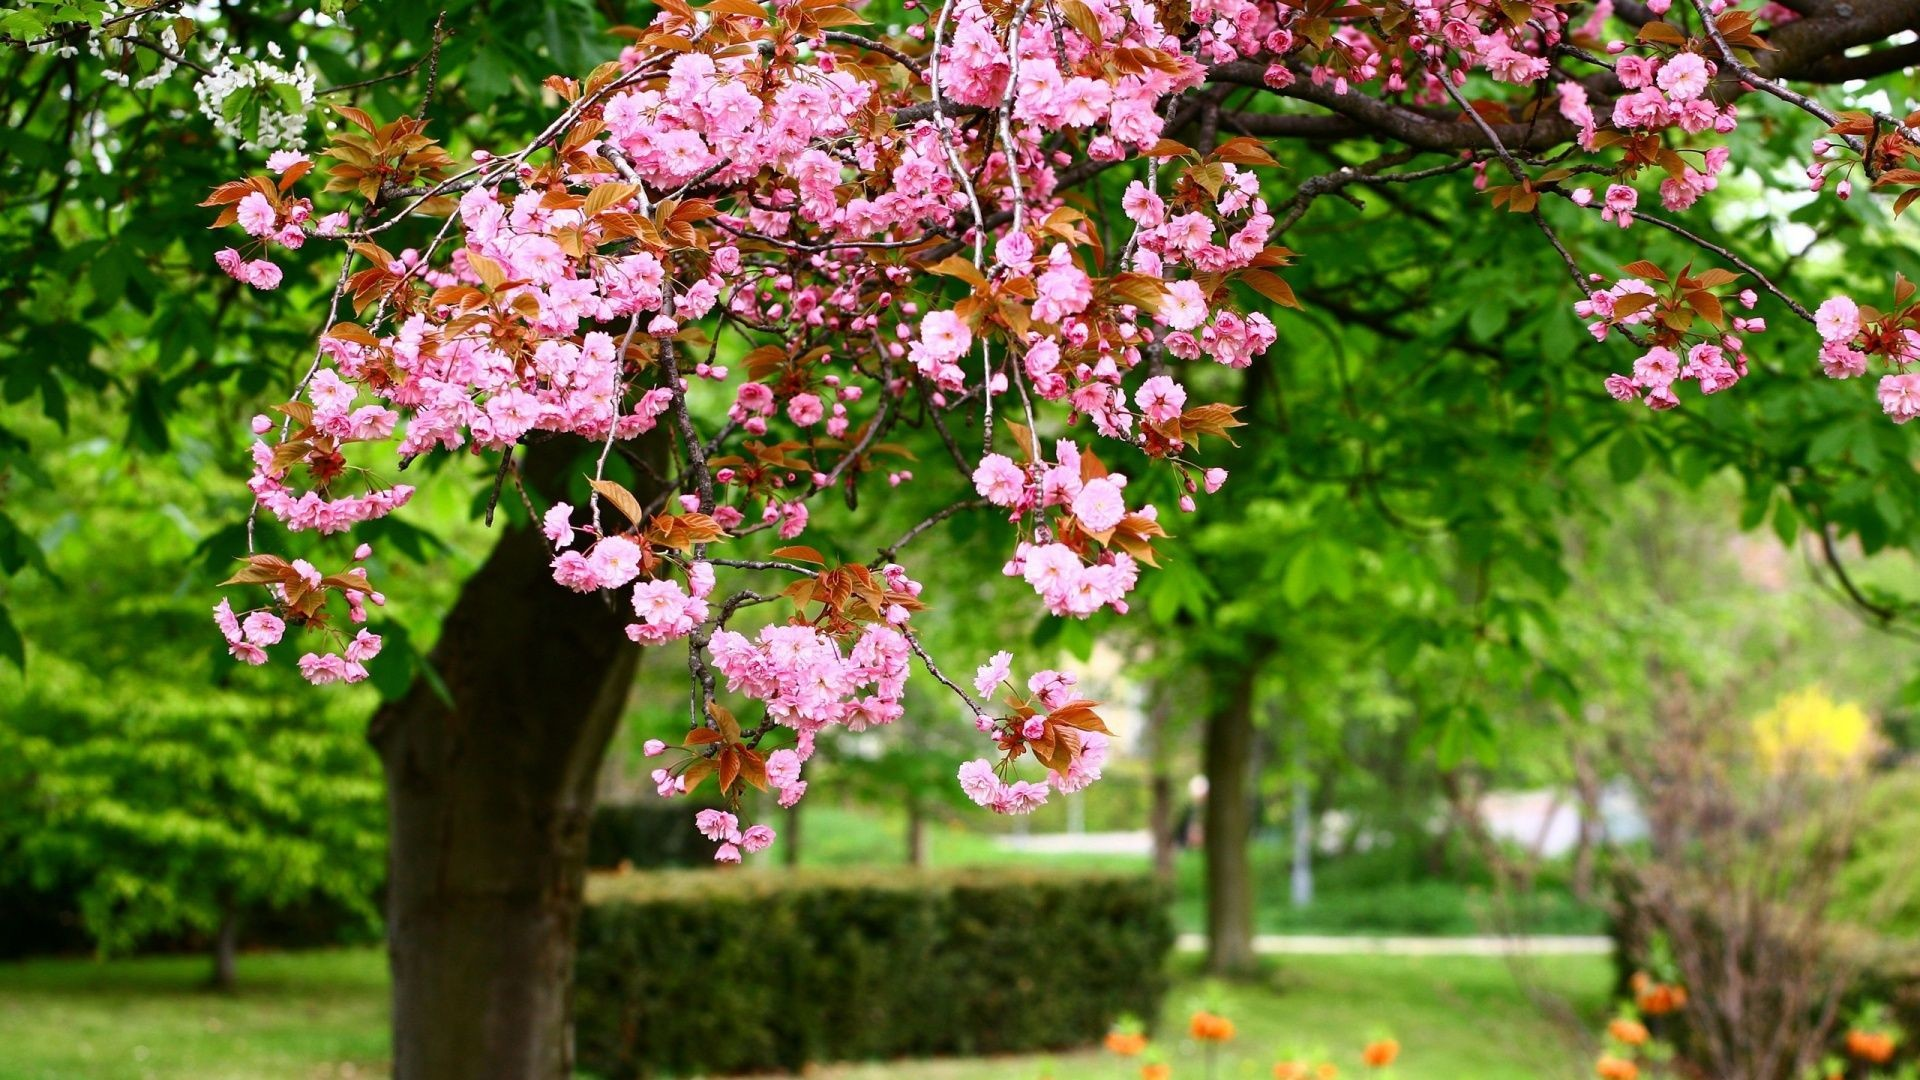 Res: 1920x1080, Ewallpapershub provide the latest image gallery of Spring Desktop Pictures.  View our best collection of